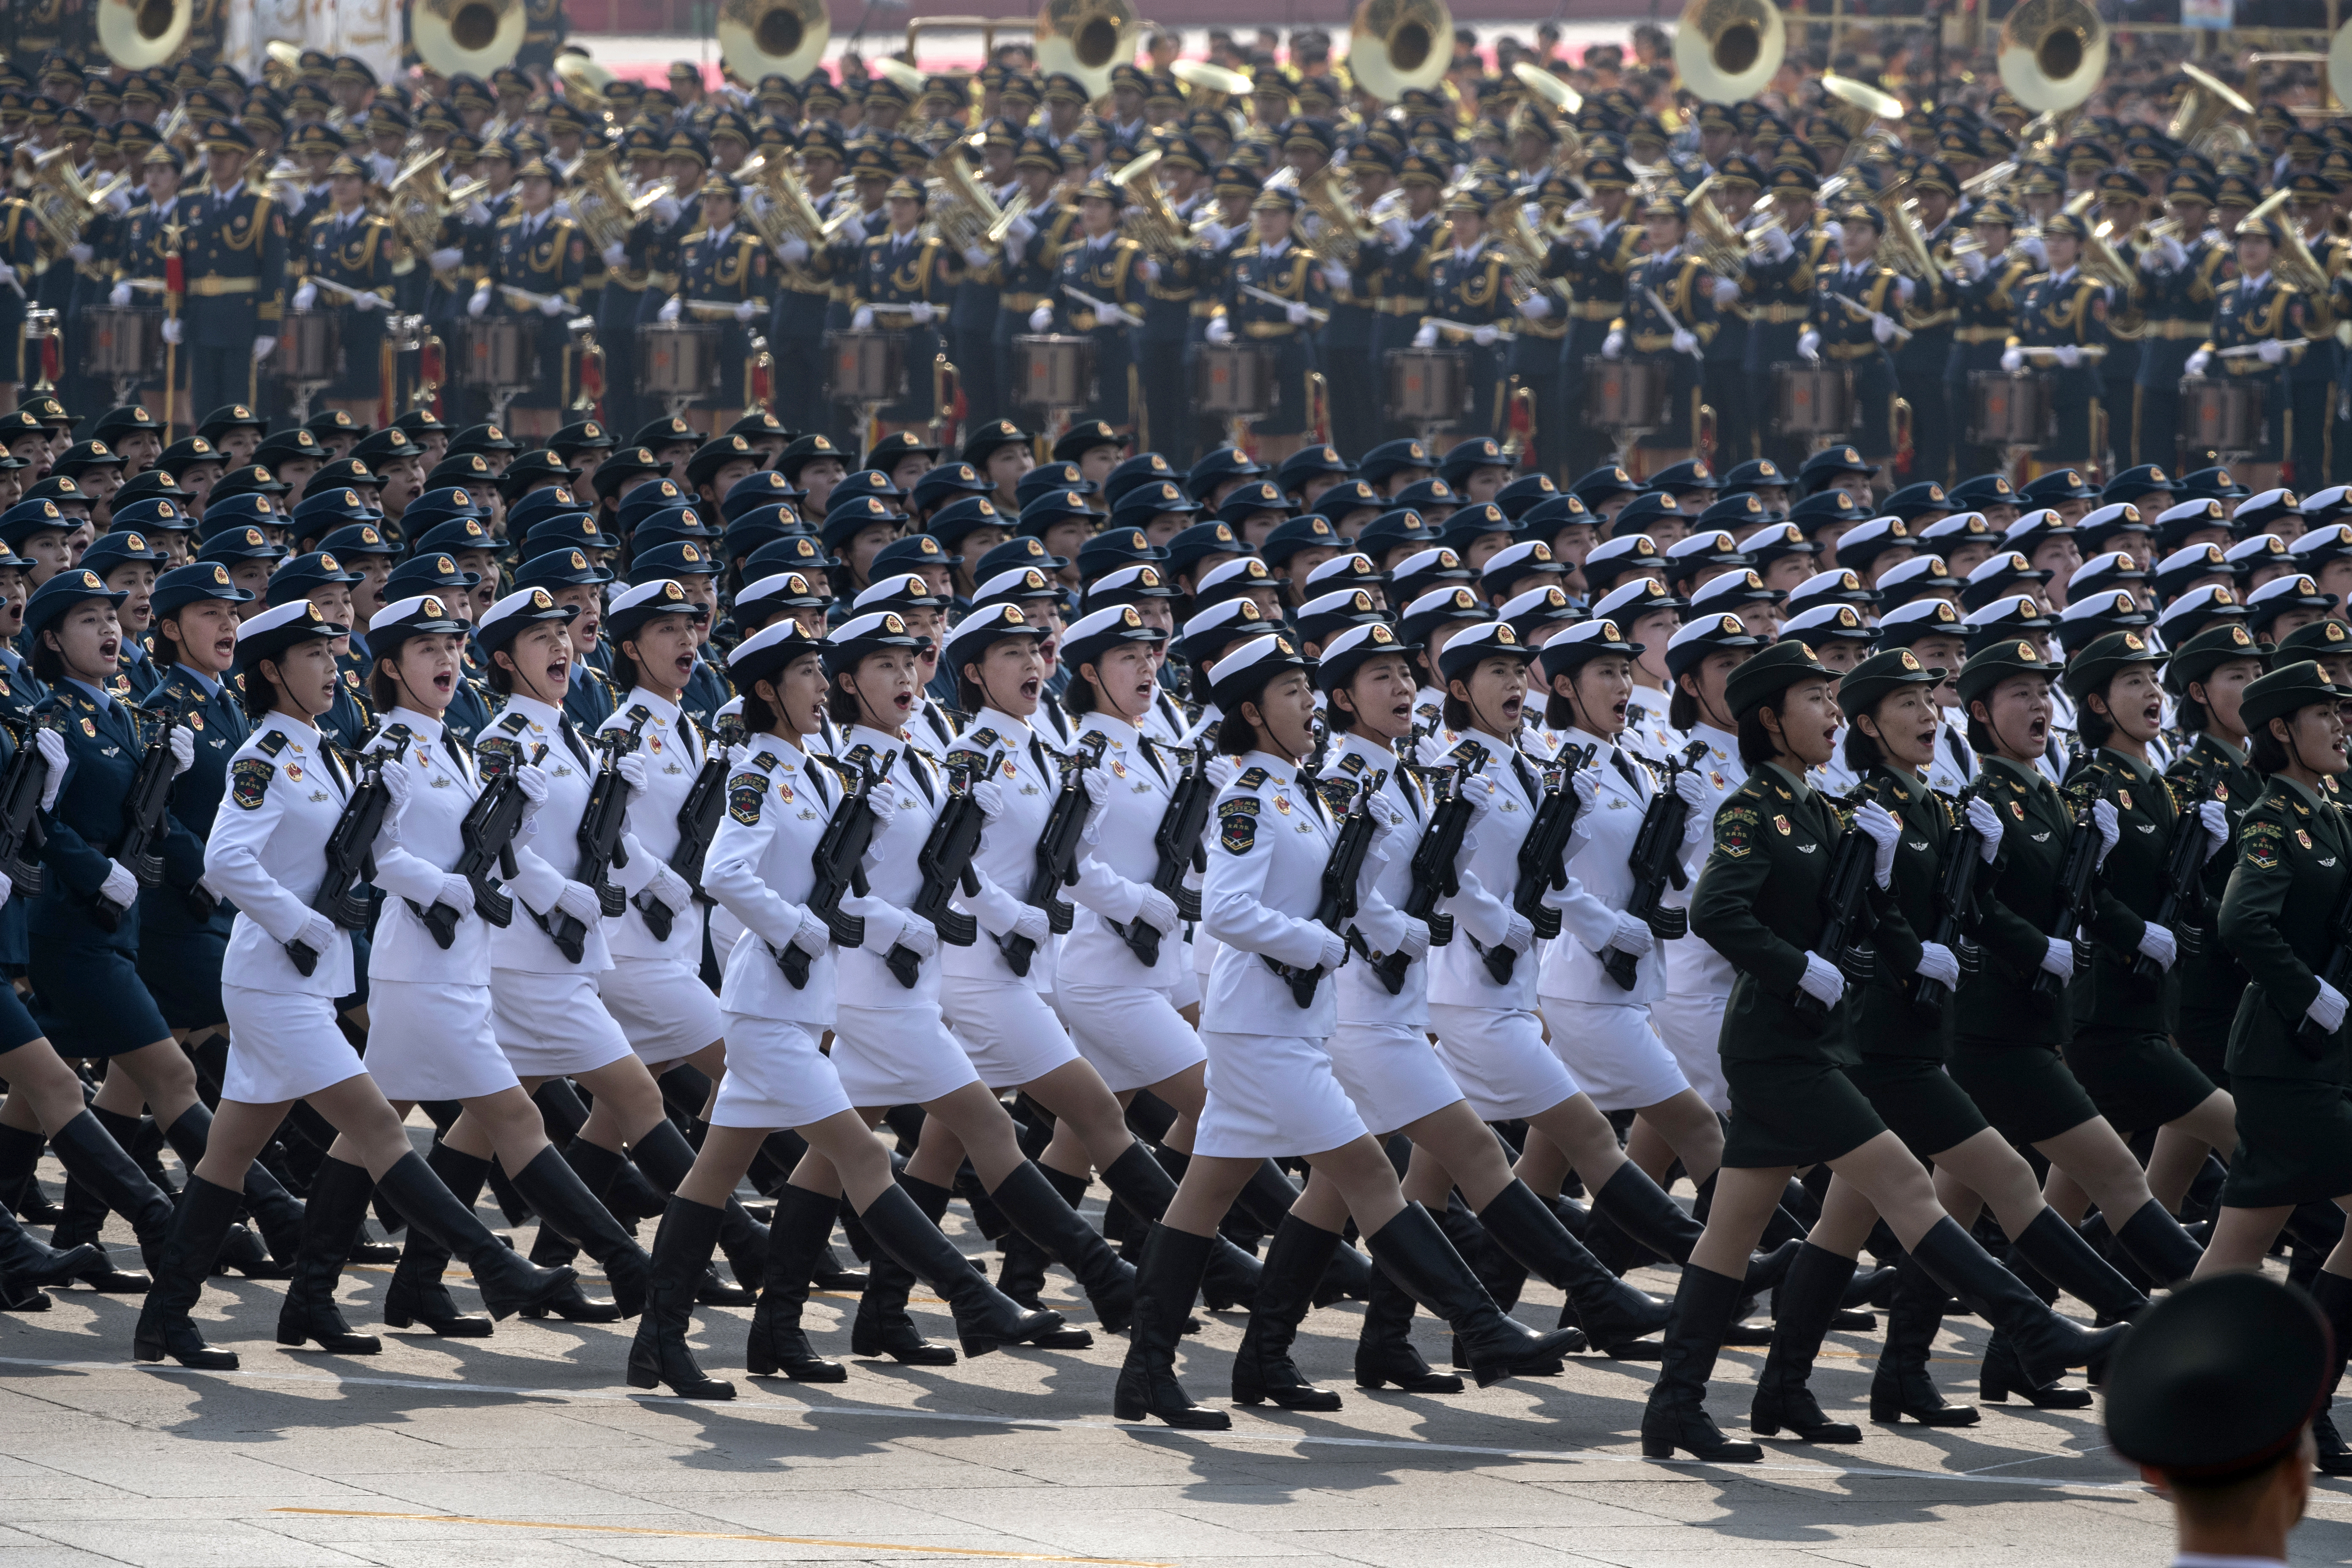 Chinese soldiers shout as they march in formation. (Kevin Frayer/Getty Images)